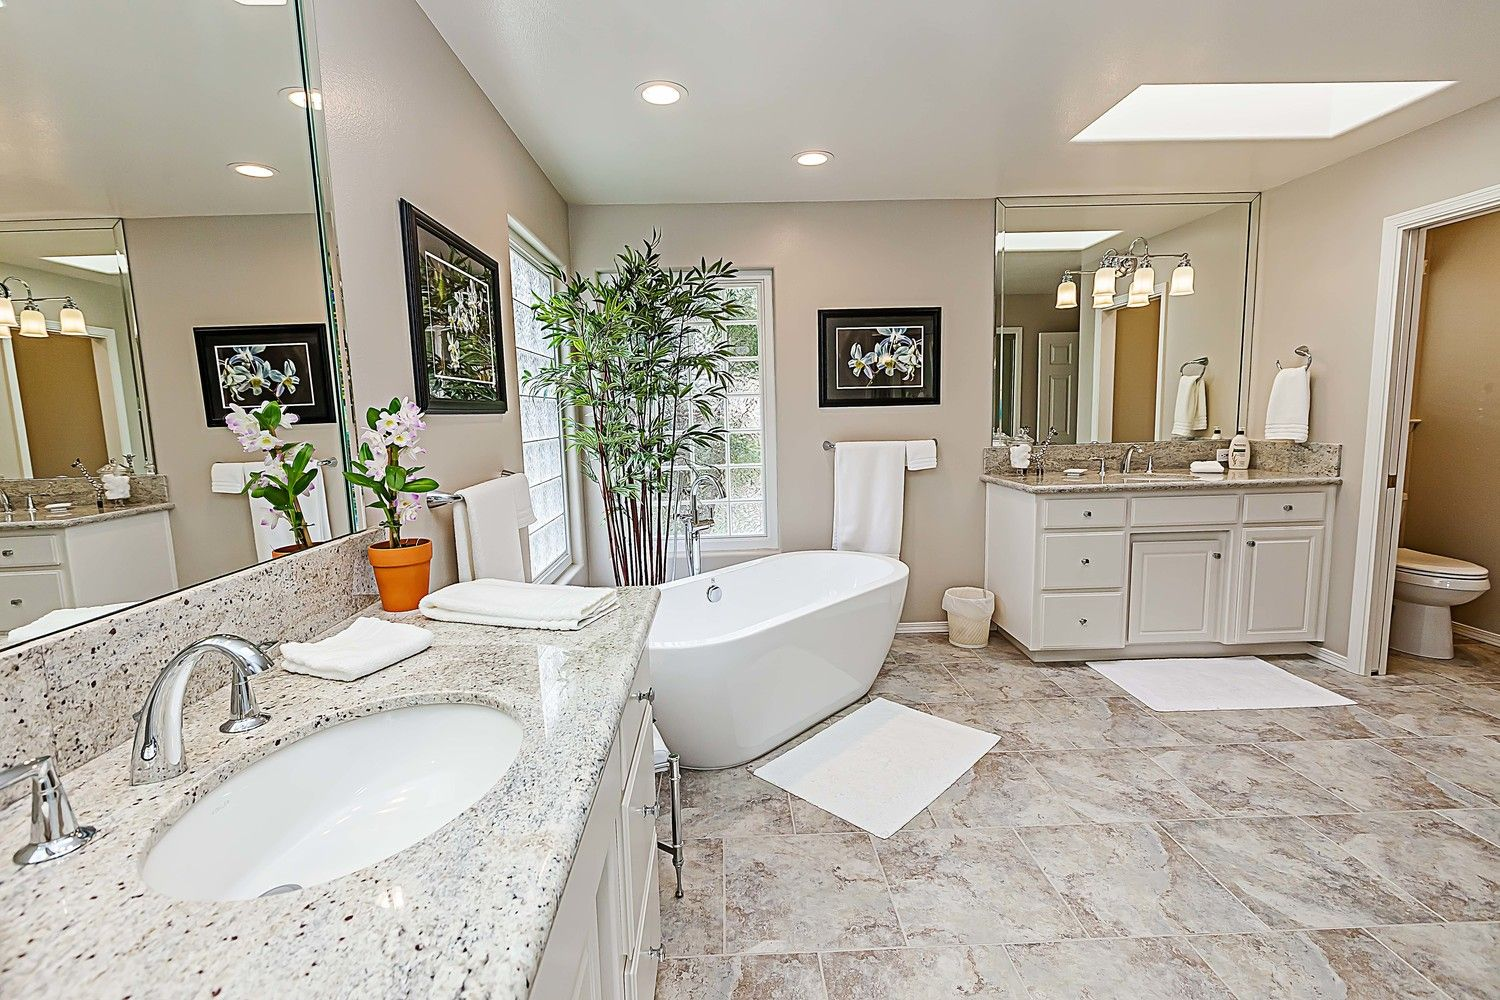 Beautify Your Kitchen Bathroom With Remodeling Home Contractors Newco Kitchen Bathroom Remodel Bathroom Remodeling Contractors Kitchen And Bath Remodeling